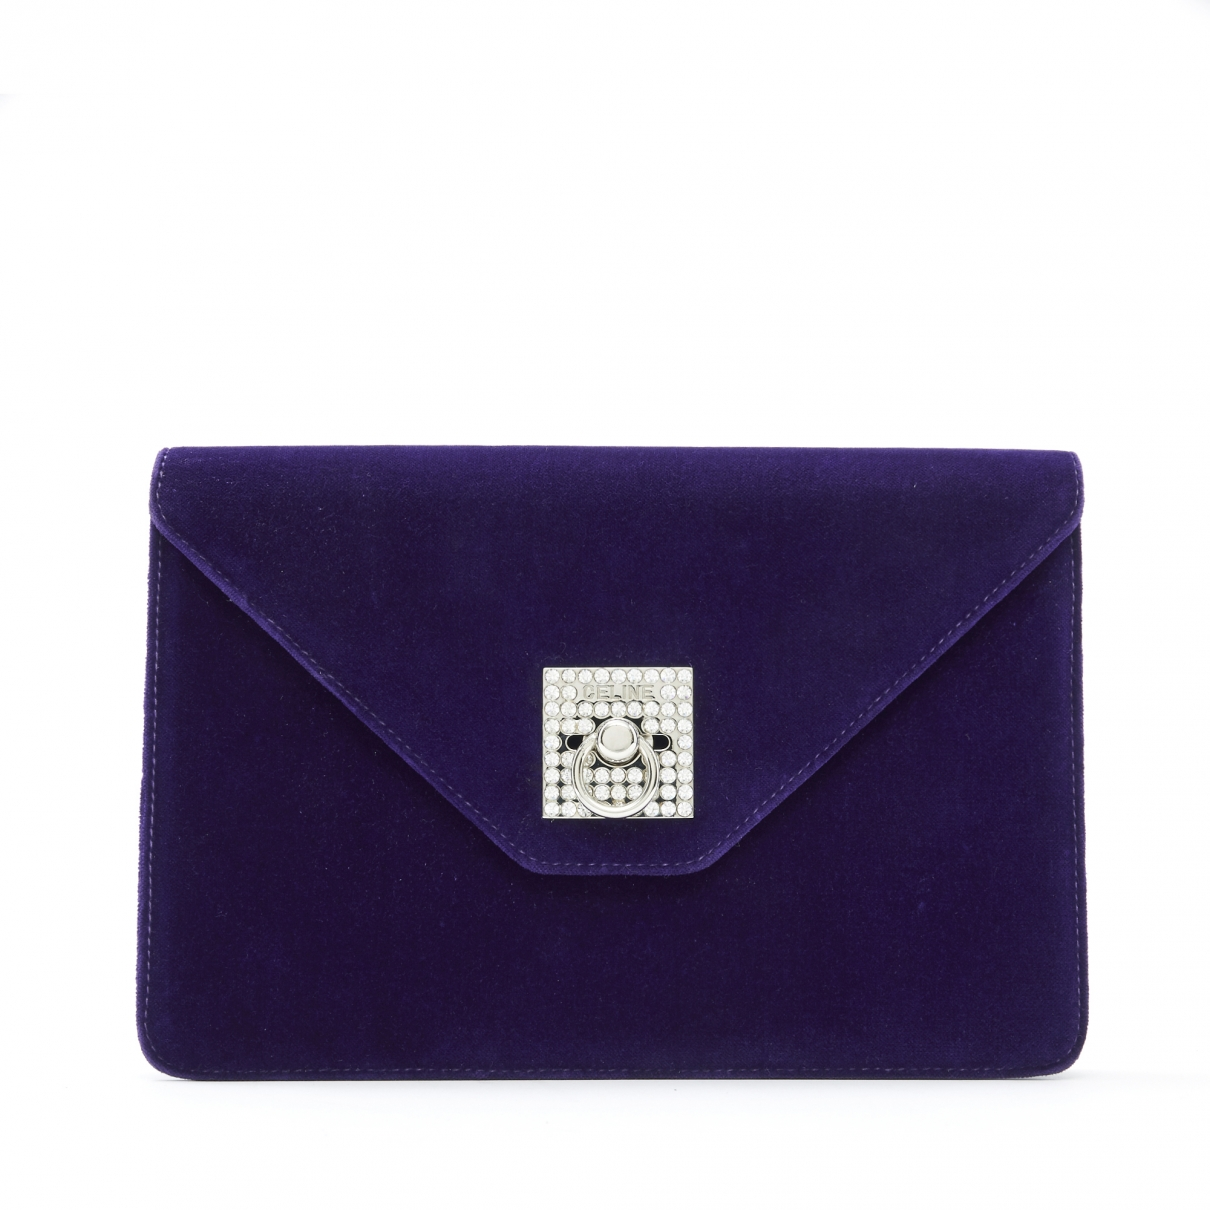 Celine \N Purple Velvet Clutch bag for Women \N